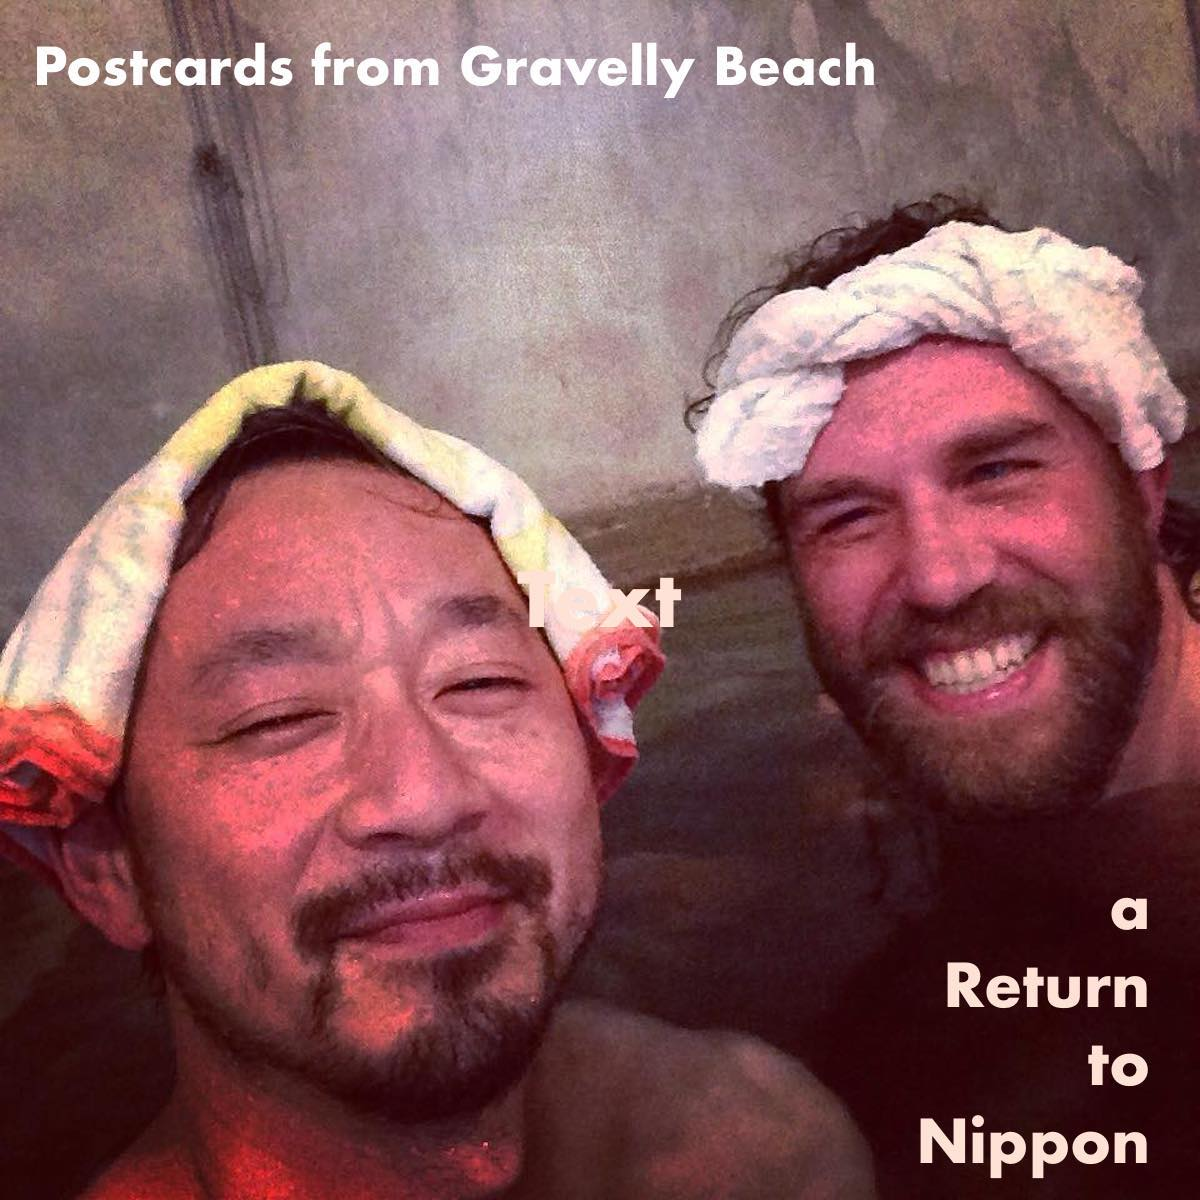 Postcards from Gravelly Beach – Return to Nippon, onsen